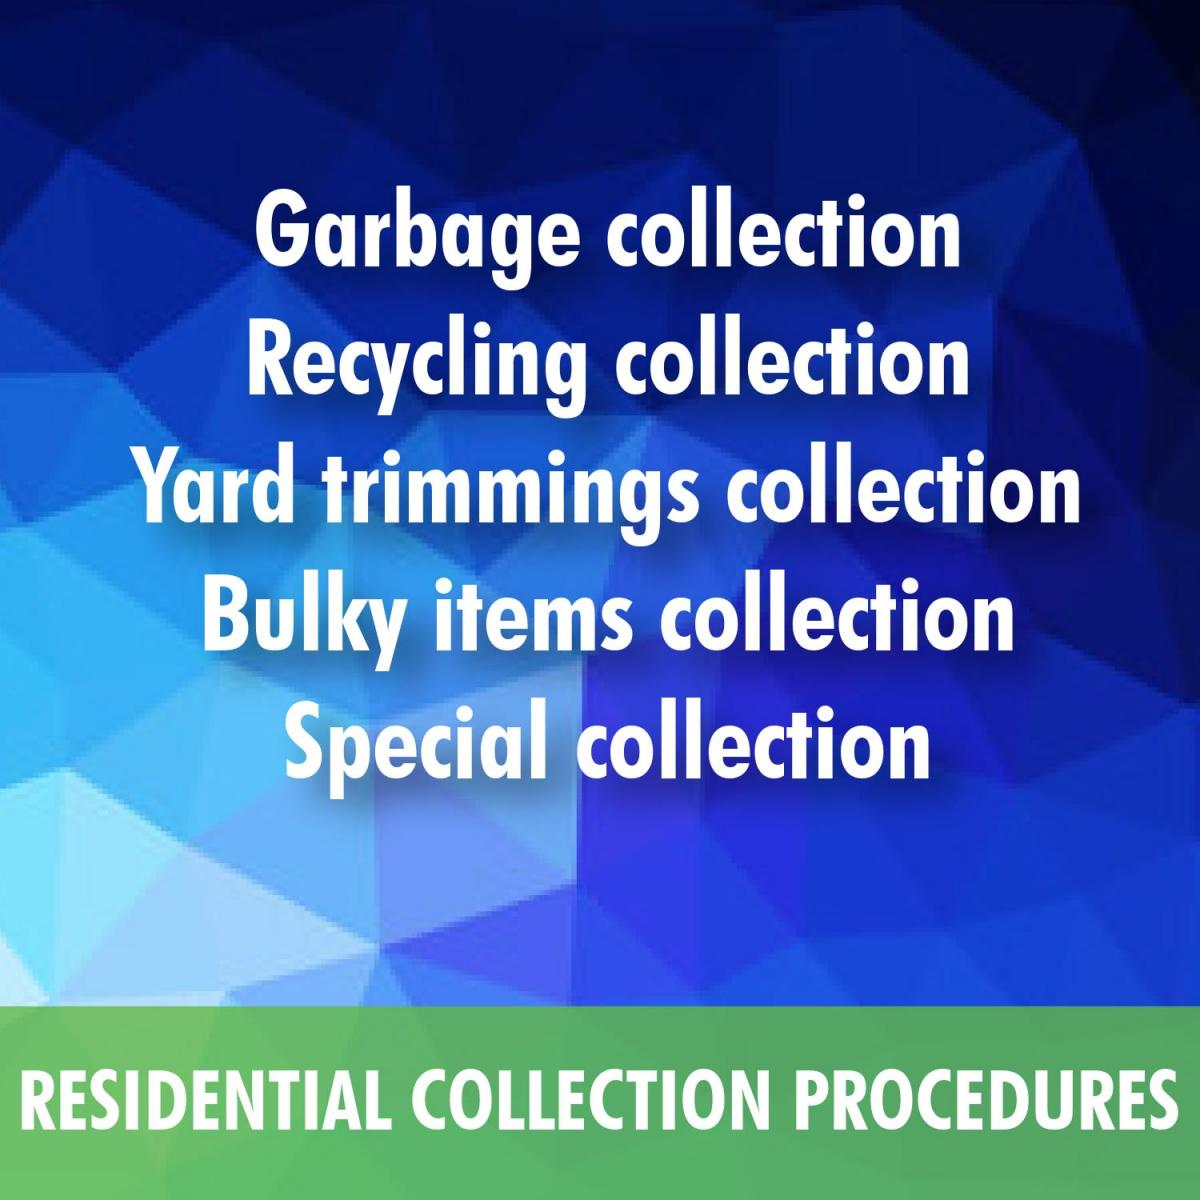 Residential Collection Procedures